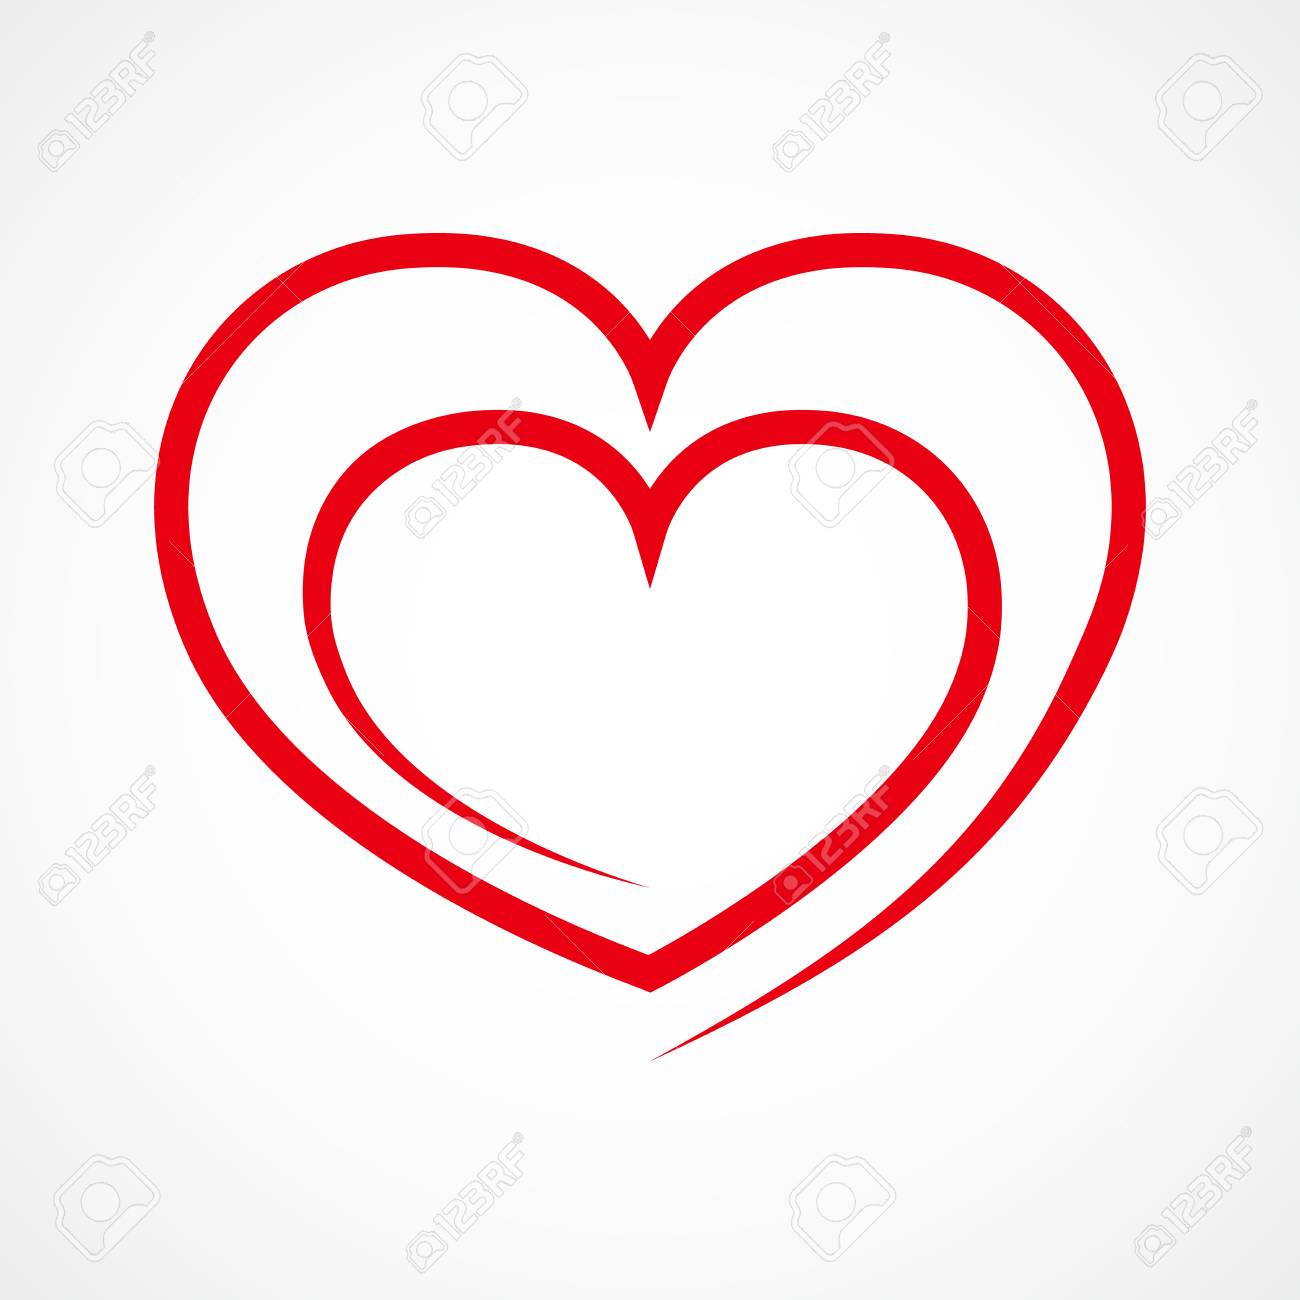 Red Heart Outline Png & Free Red Heart Outline.png Transparent Images  #67147 - PNGio